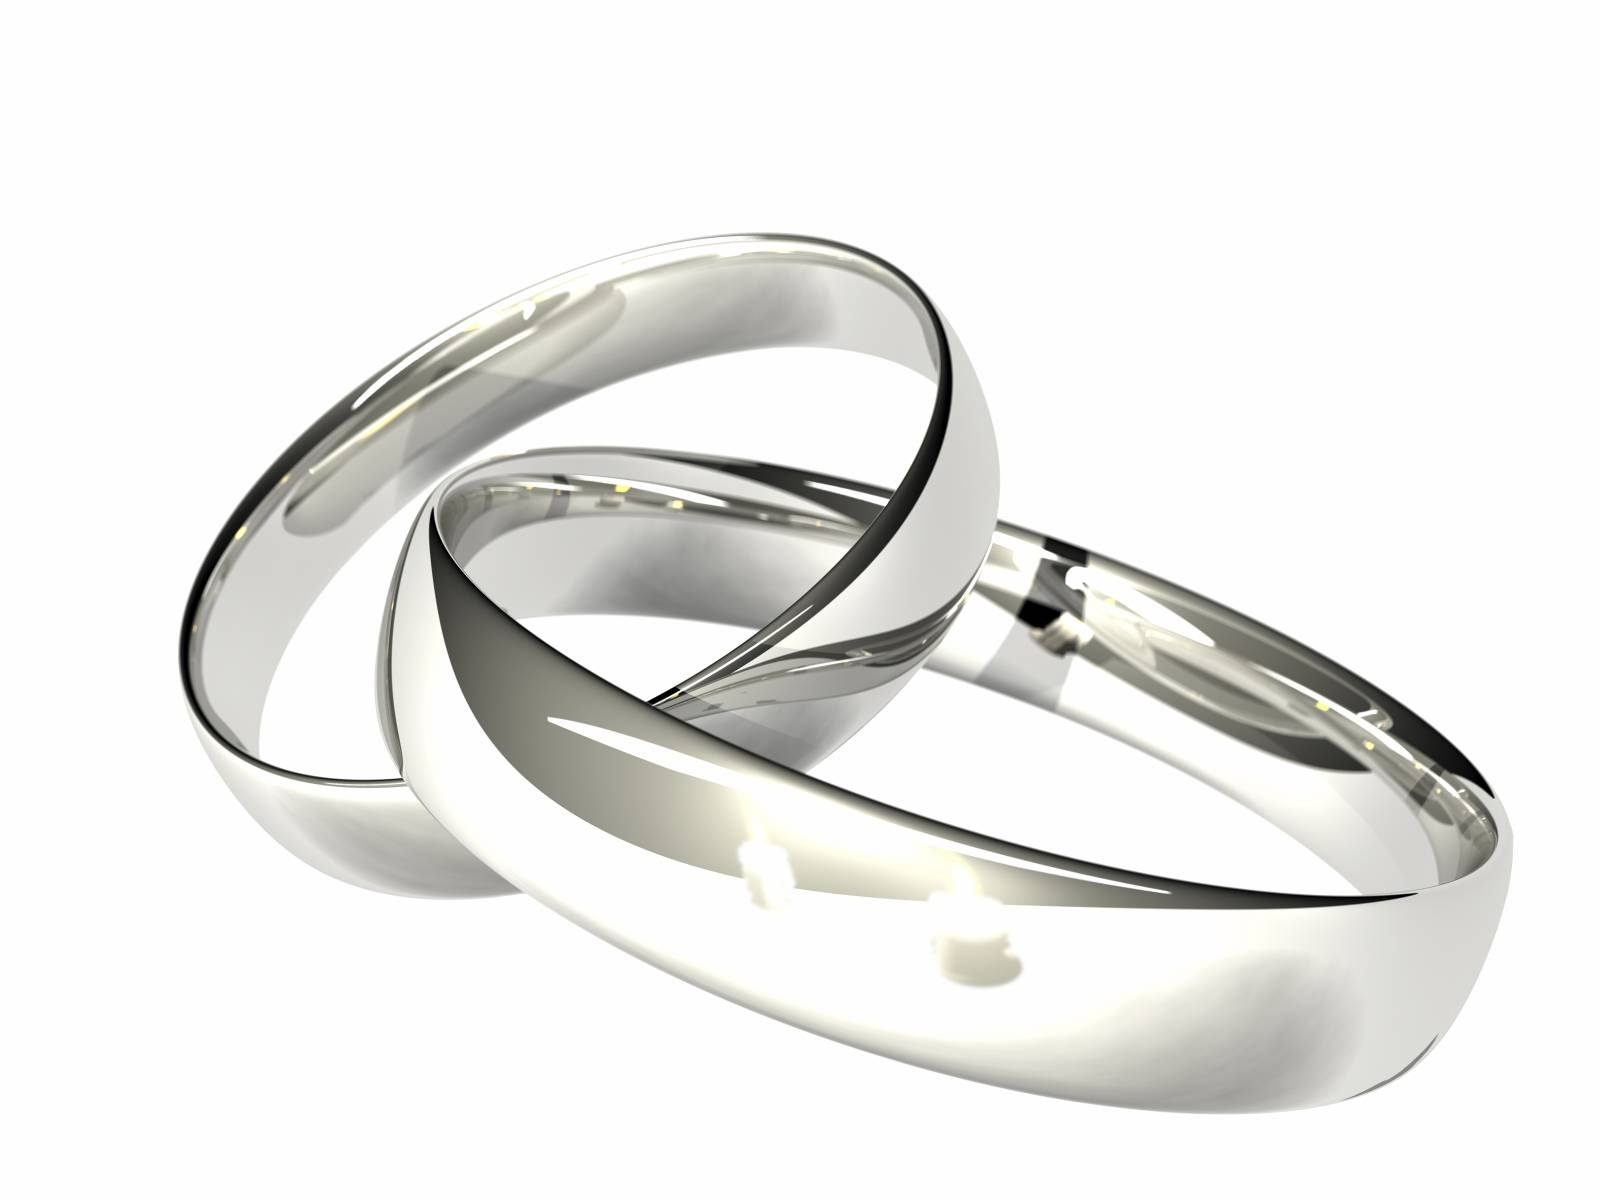 Wedding Rings : Homemade Wedding Bands Make Your Own Wedding Ring Regarding Massachusetts Wedding Bands (View 8 of 15)